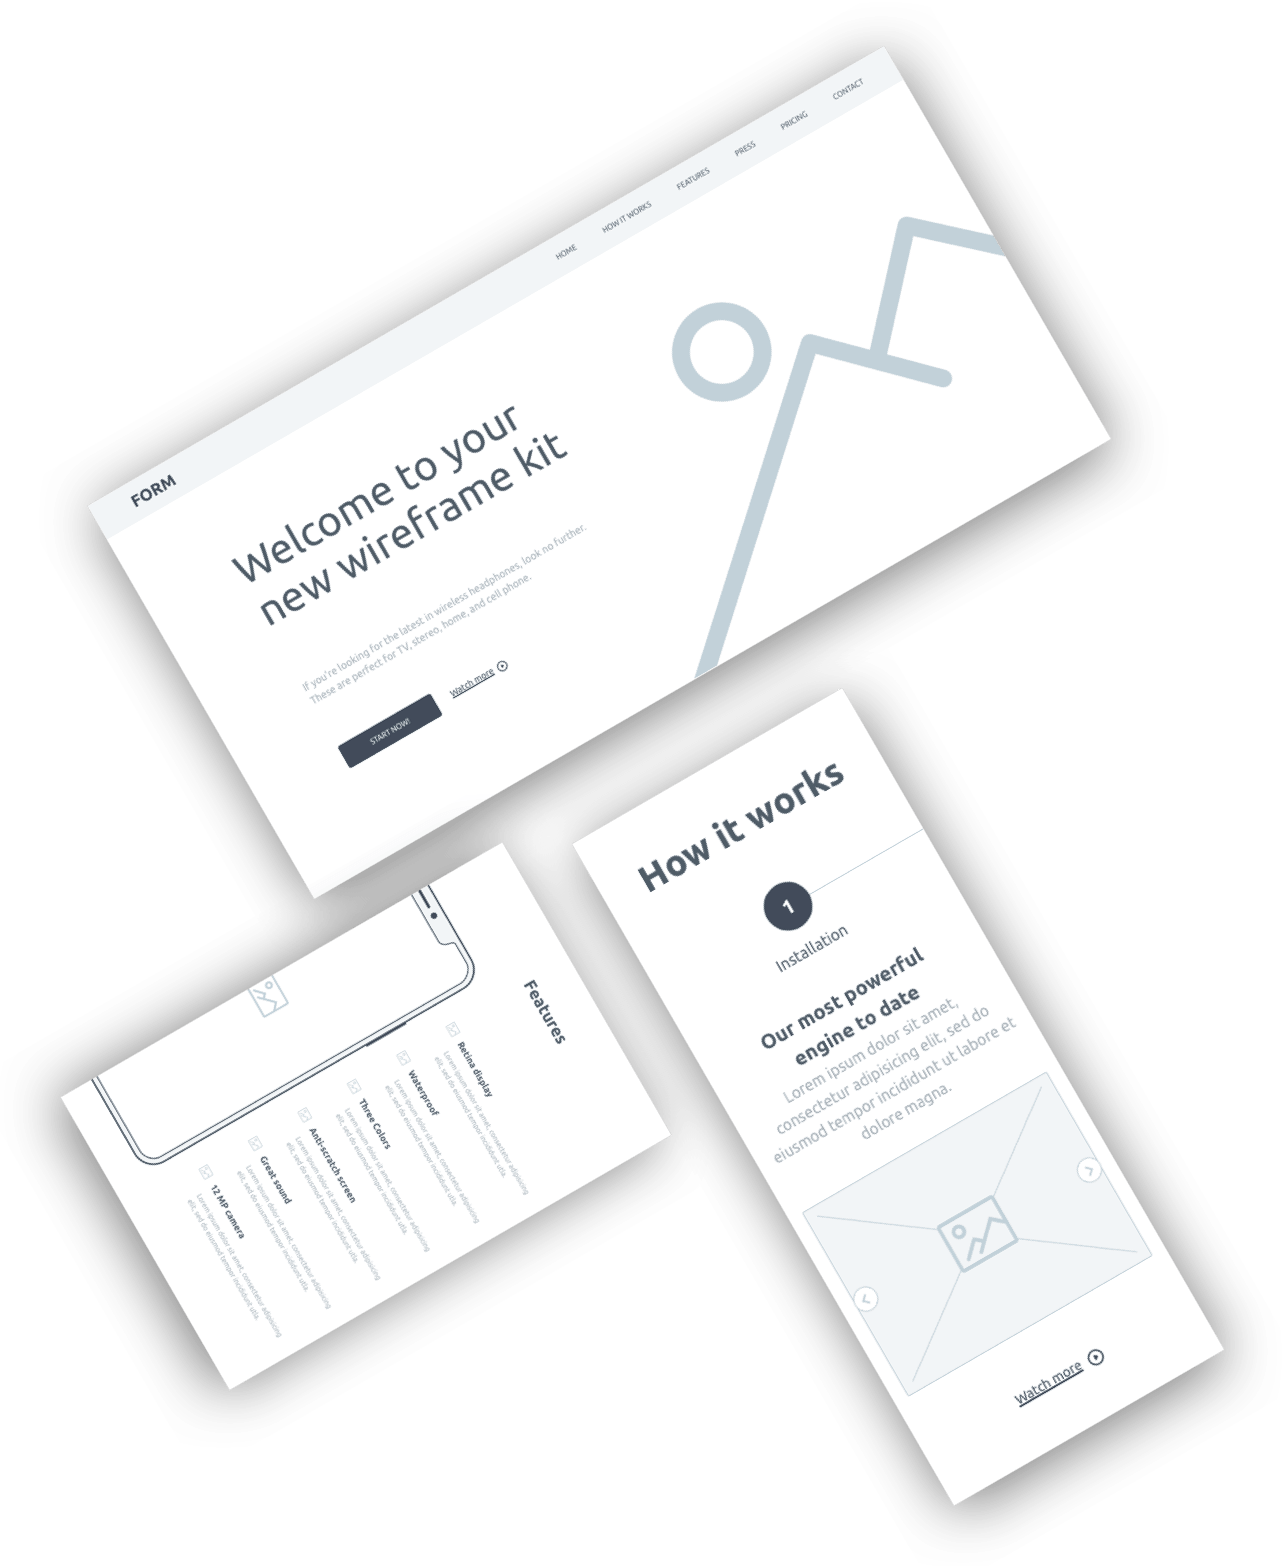 Form Free Wireframe Kit From Invision Wireframe Kit Wireframe Kit